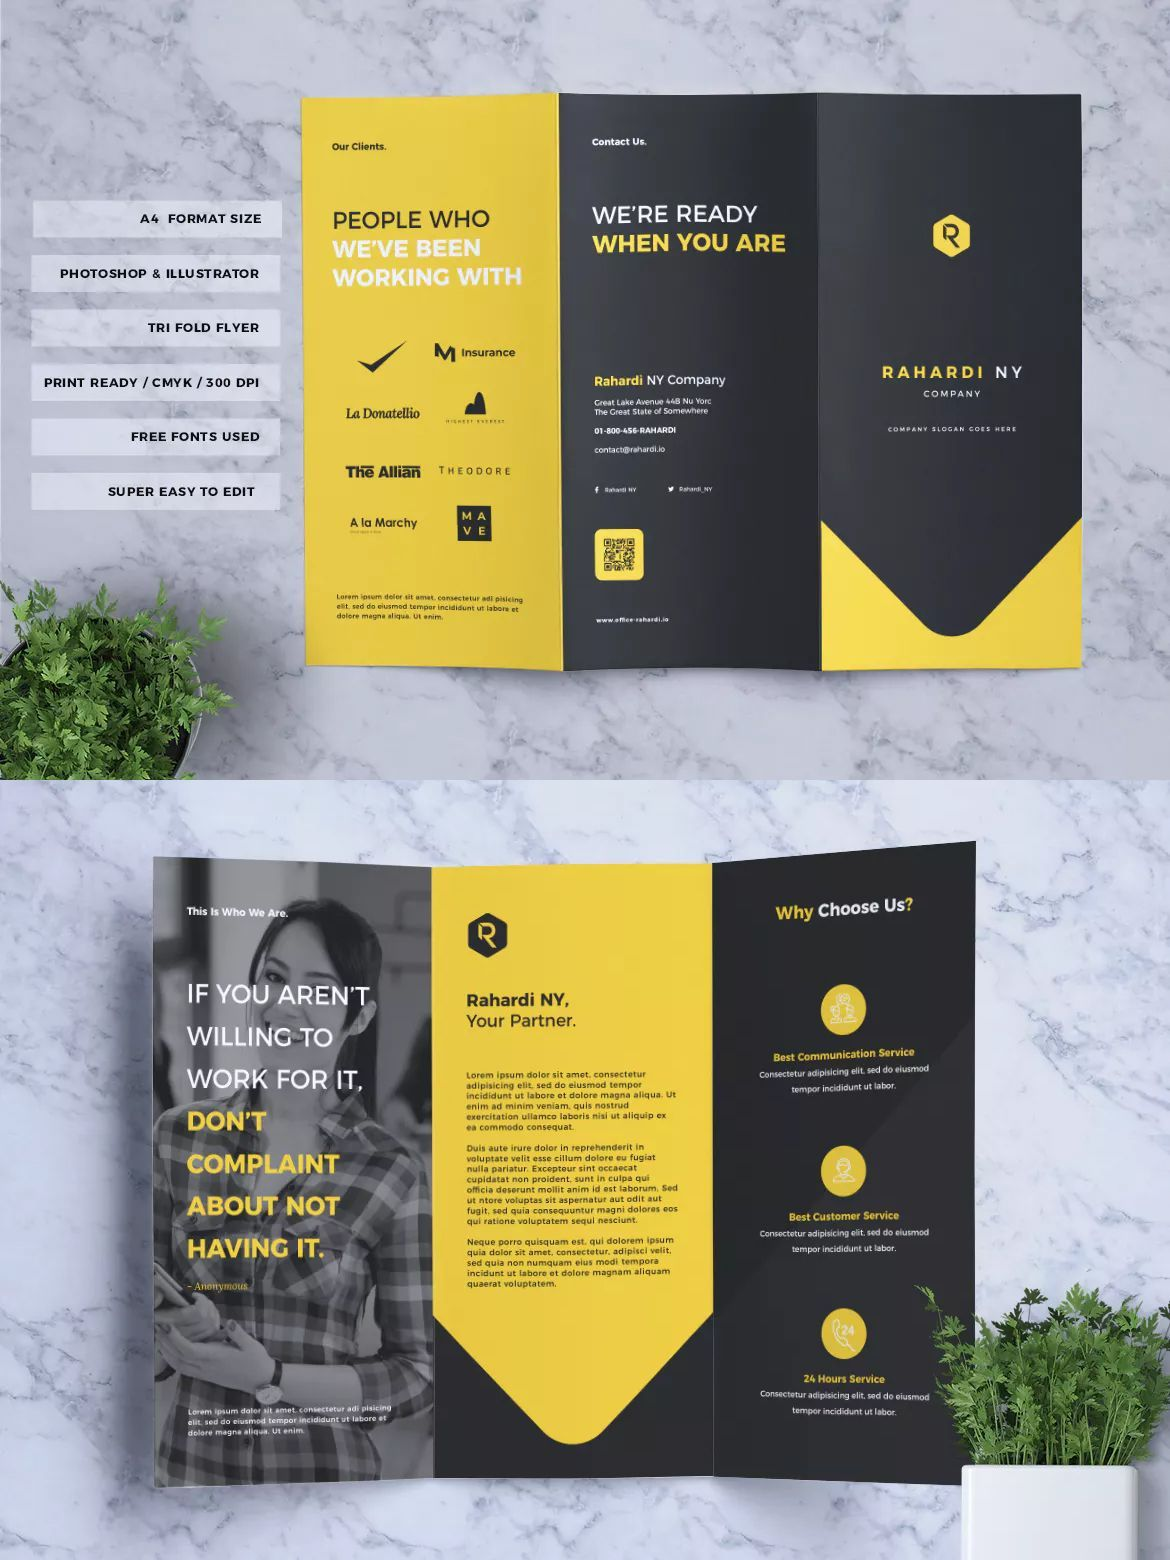 005 Fearsome Adobe Photoshop Brochure Template Free Download Design Full